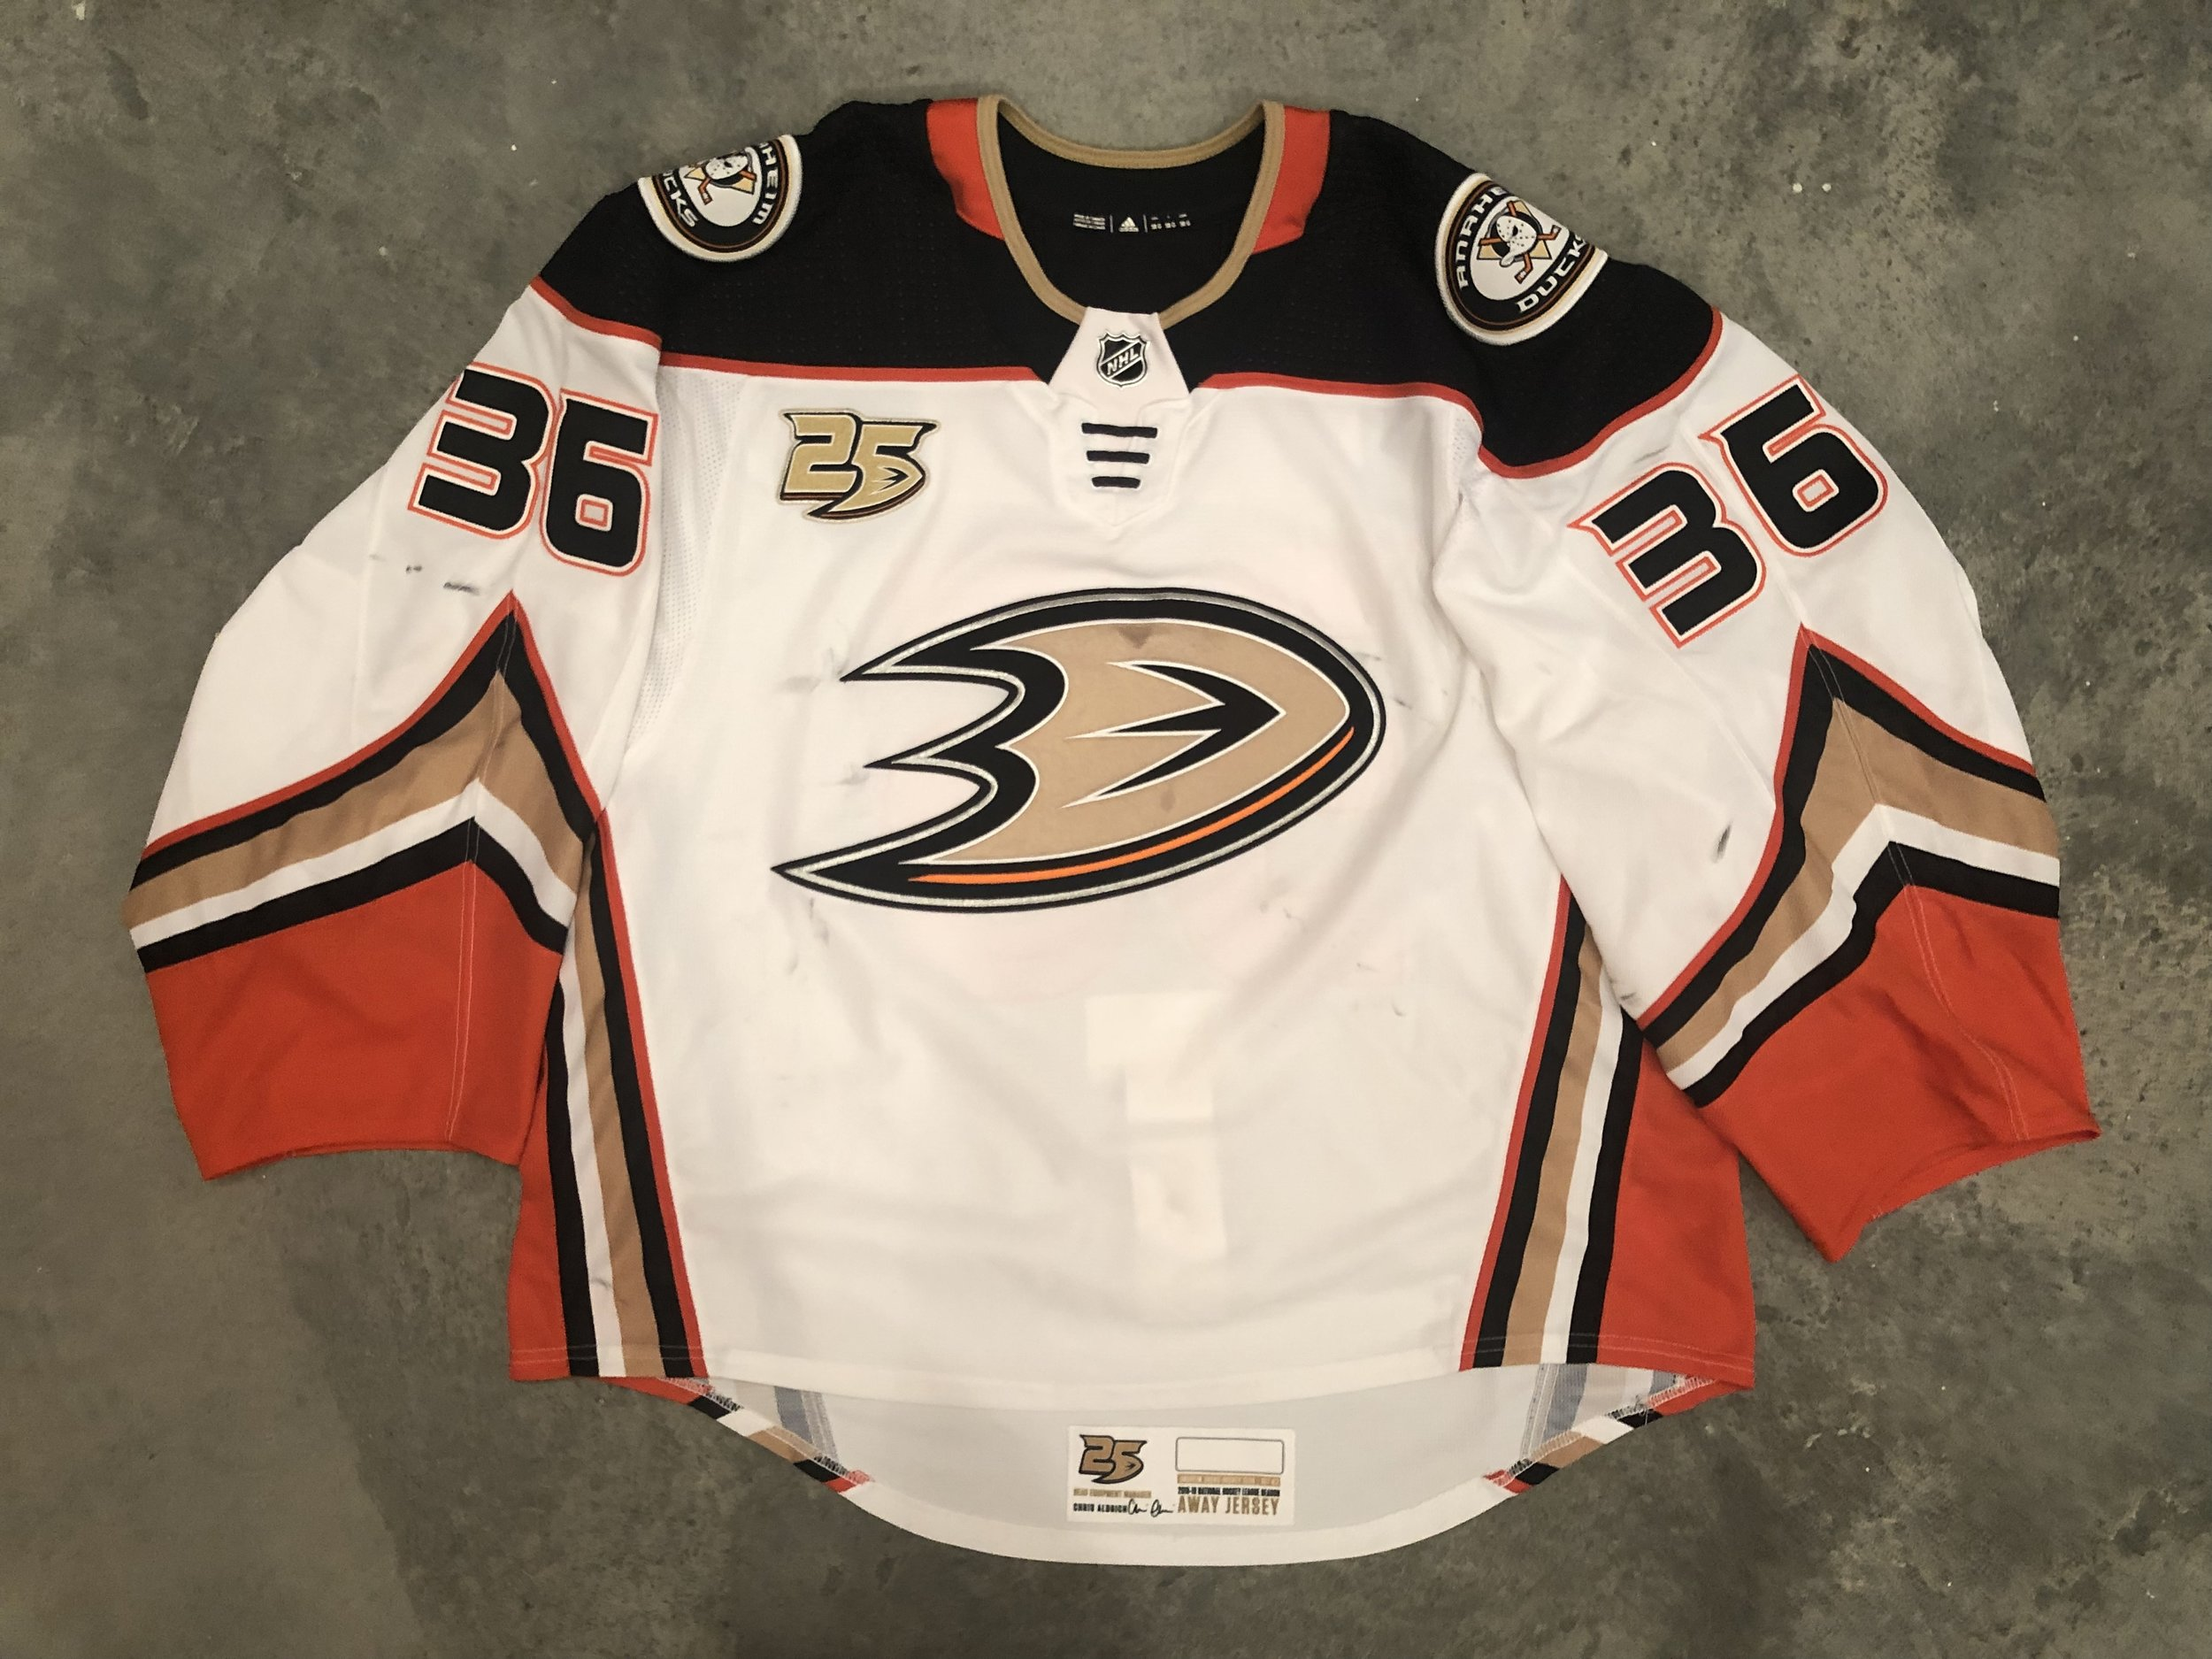 2018-19 John Gibson game worn road jersey with the 25th anniversary patch